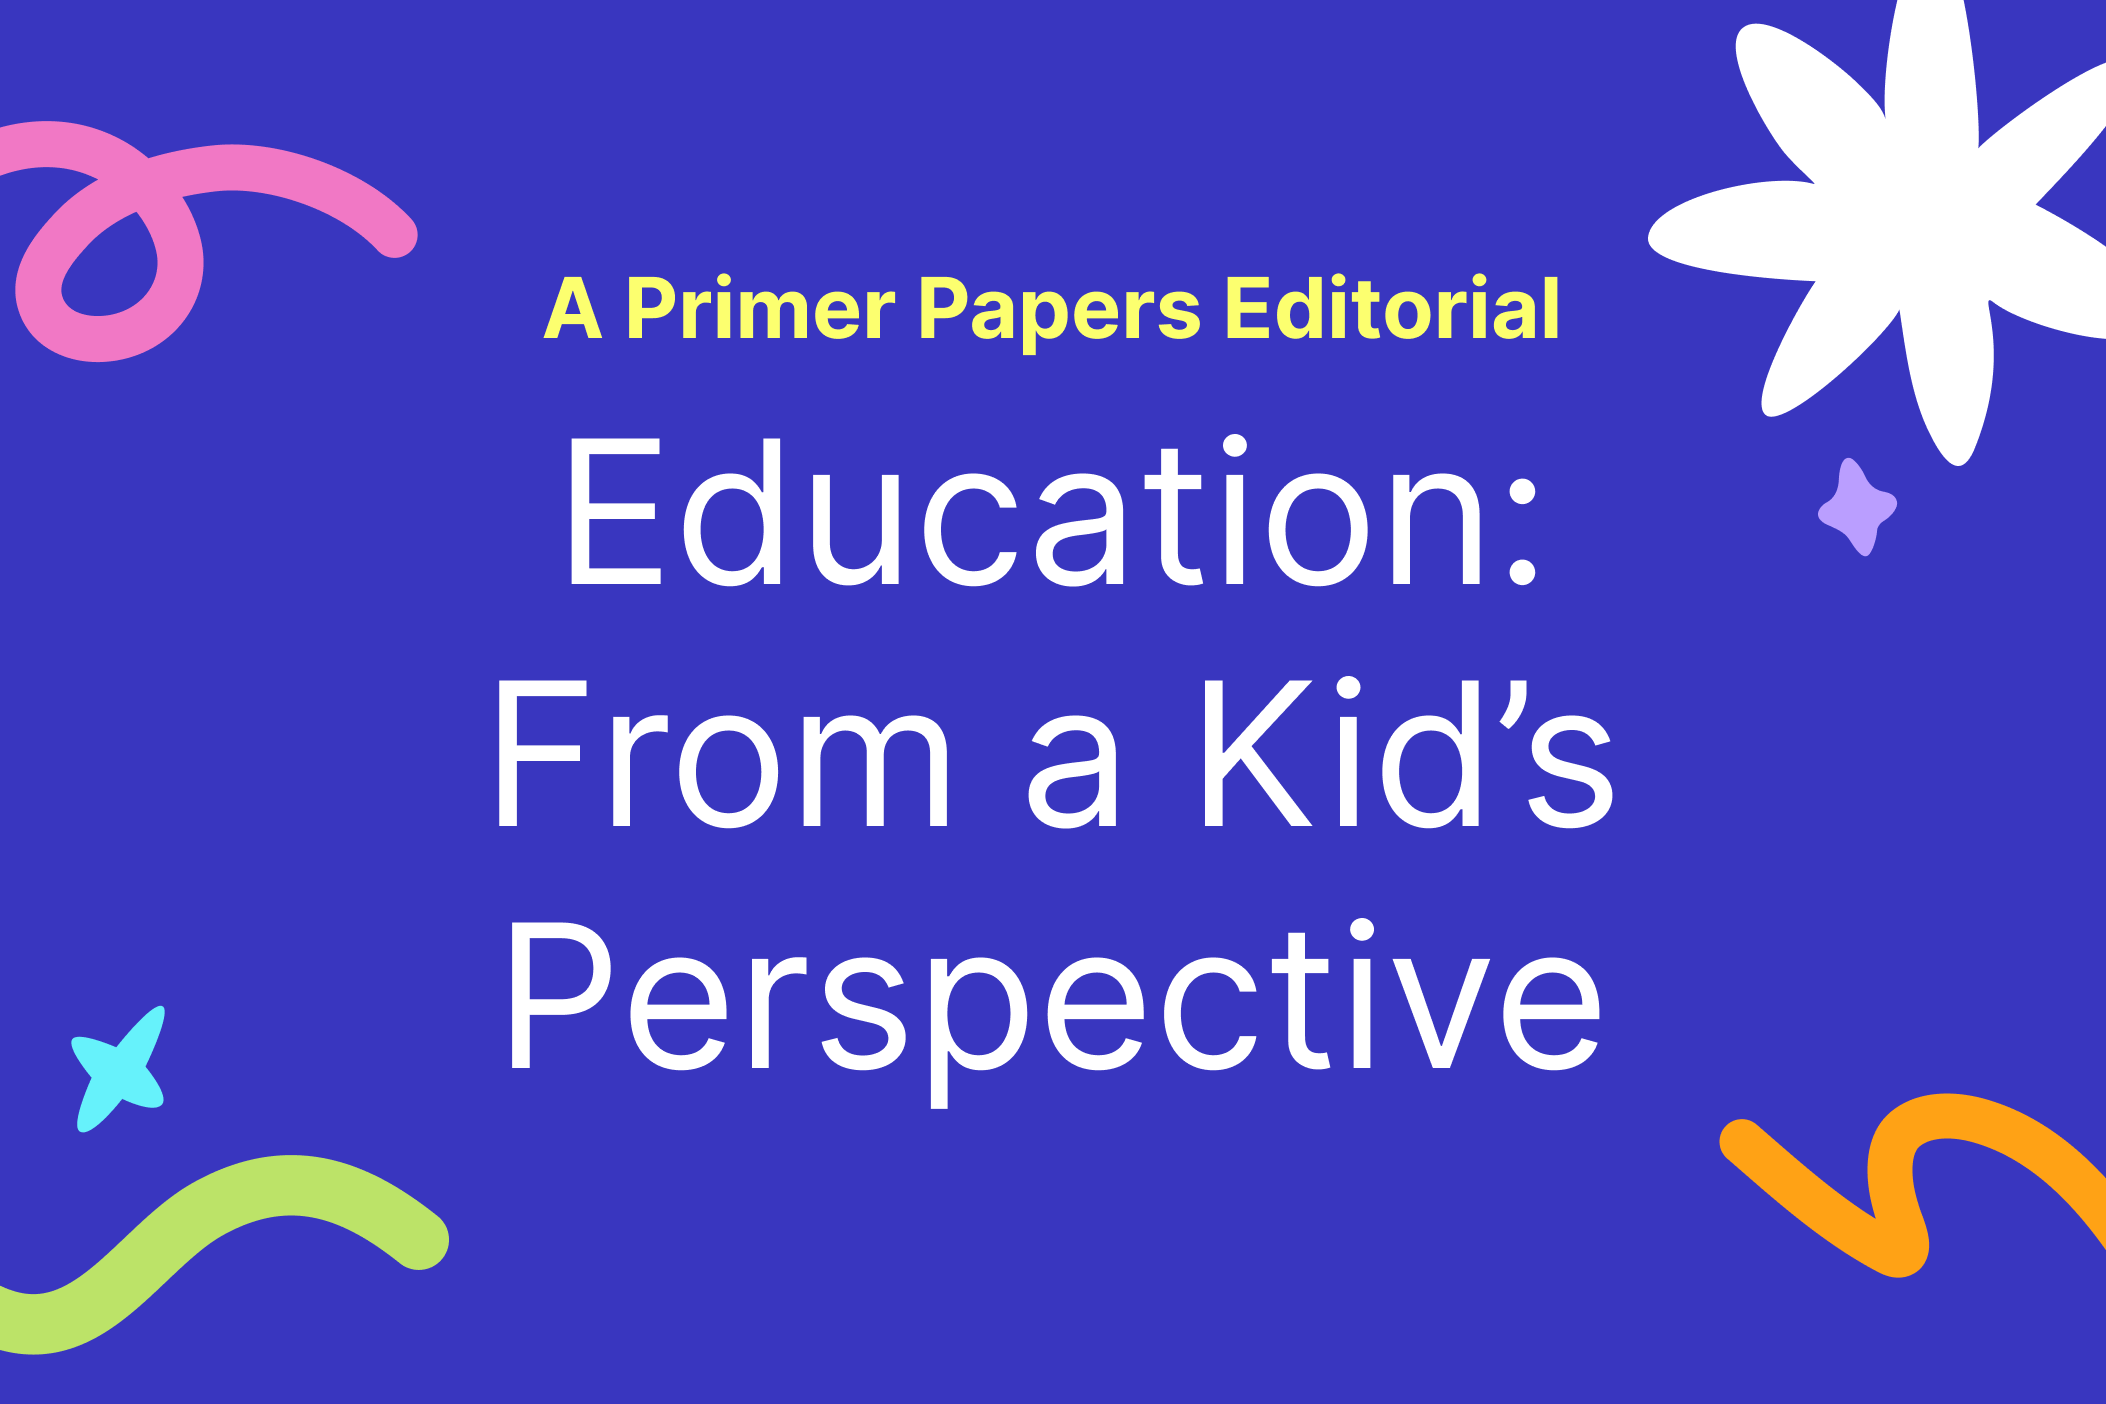 Education: From a Kid's Perspective by Maya